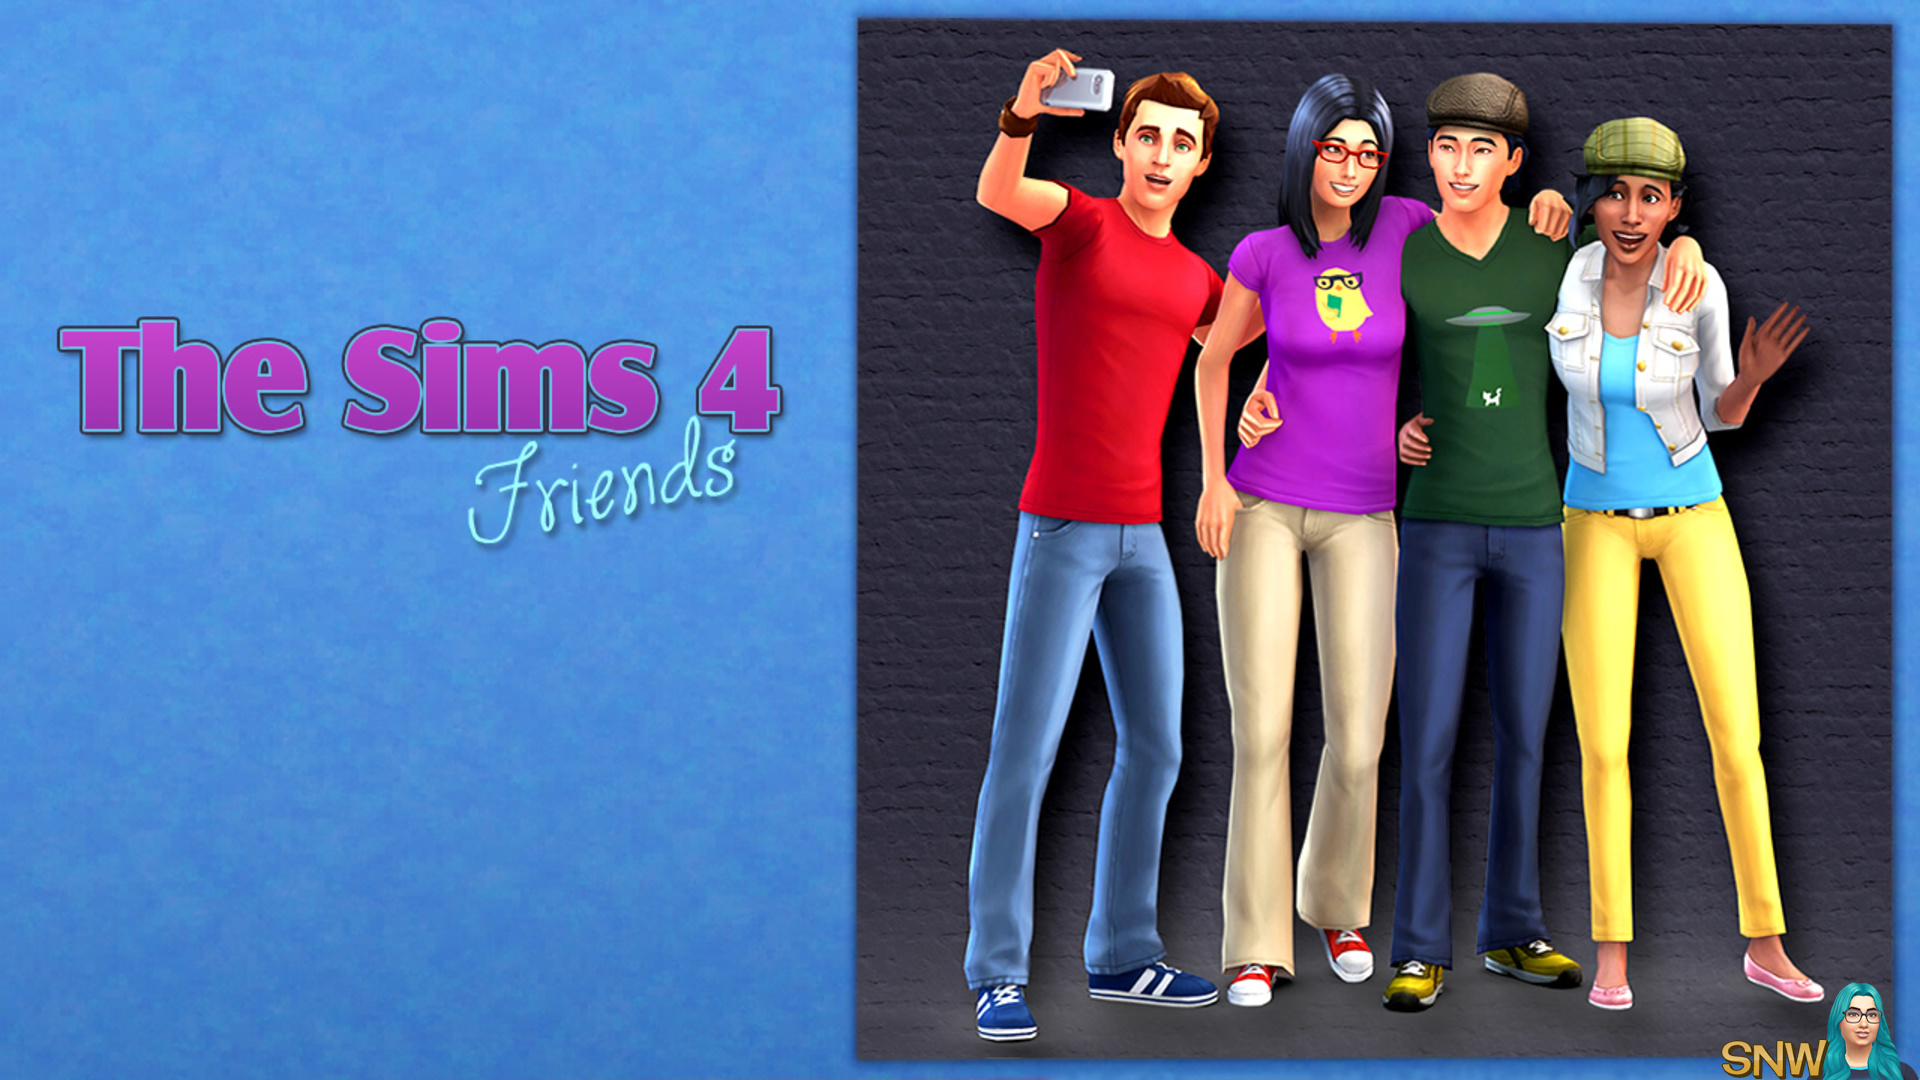 The Sims 4 Friends Poster